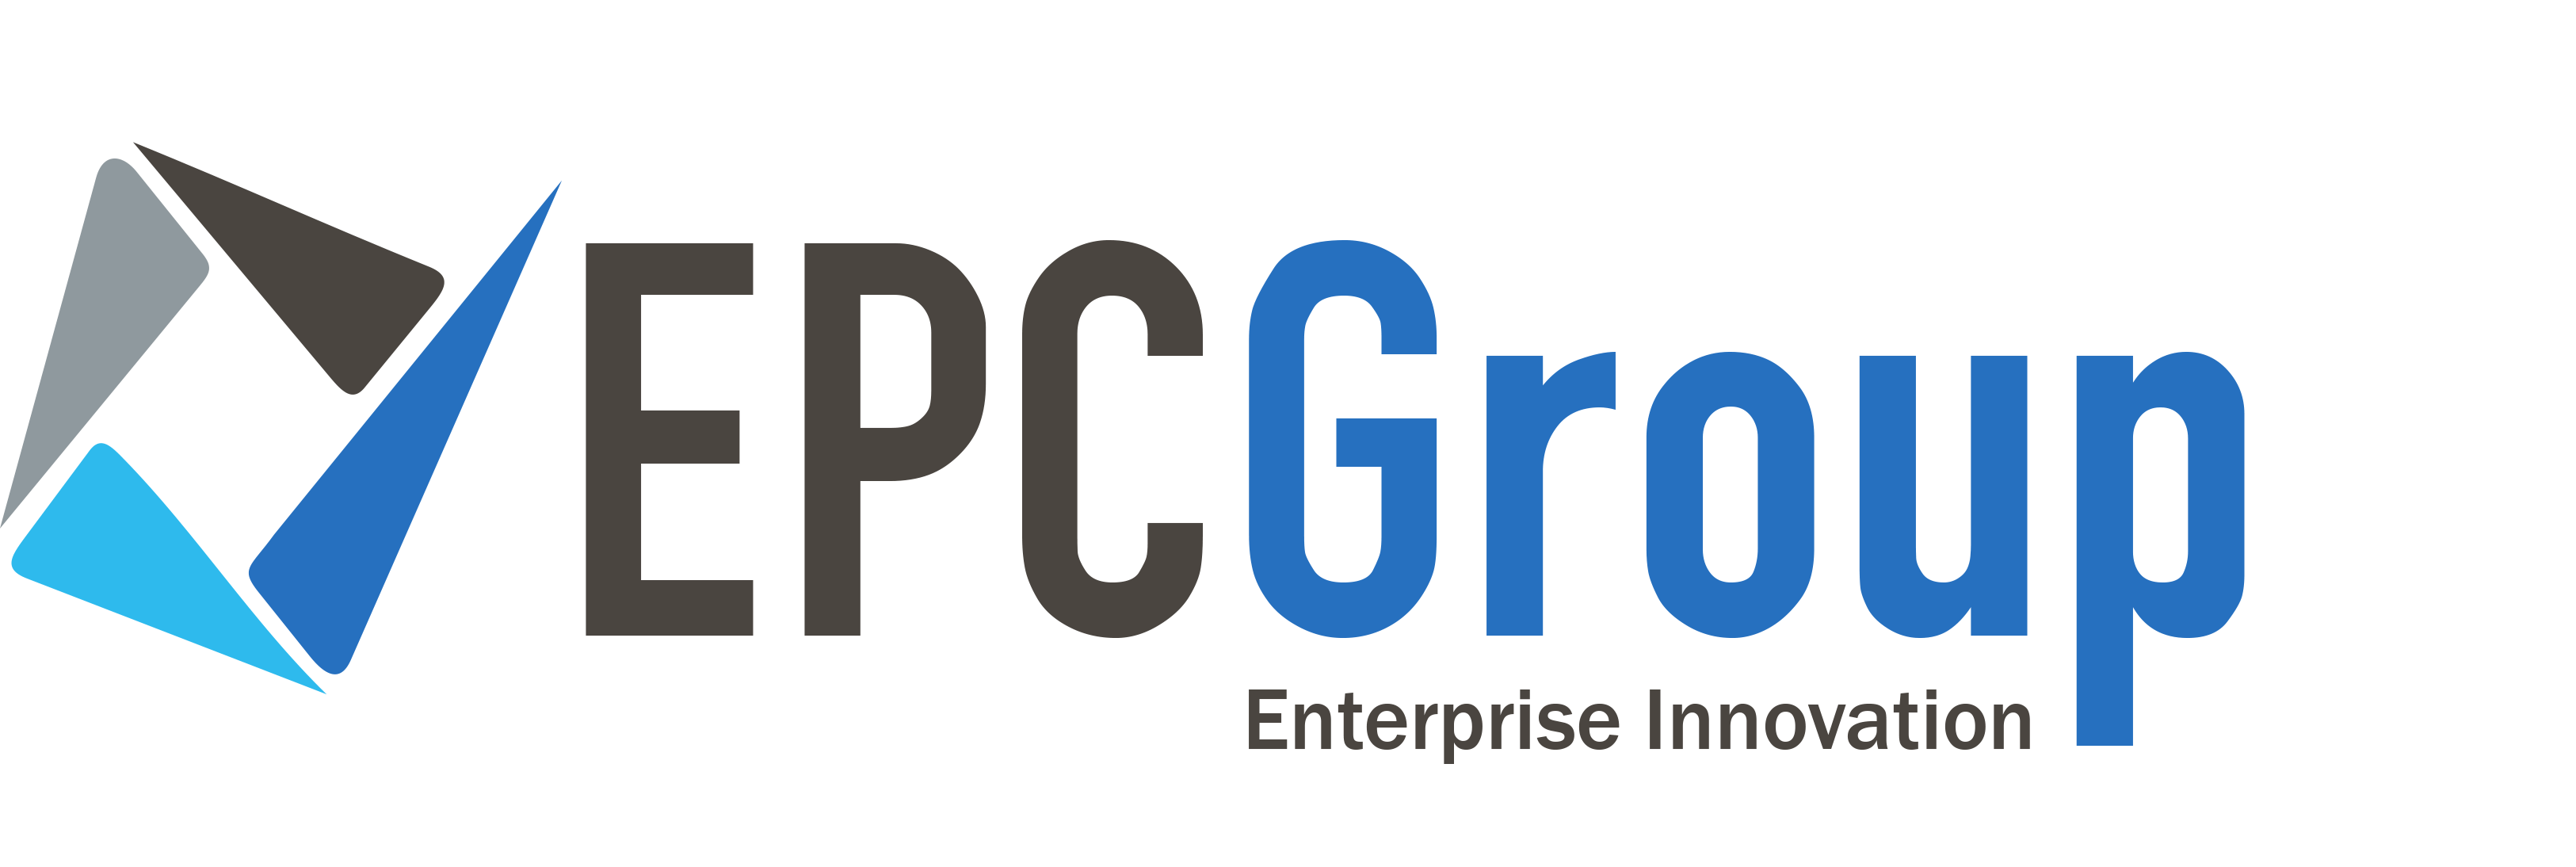 Microsoft azure consulting services epc group malvernweather Gallery